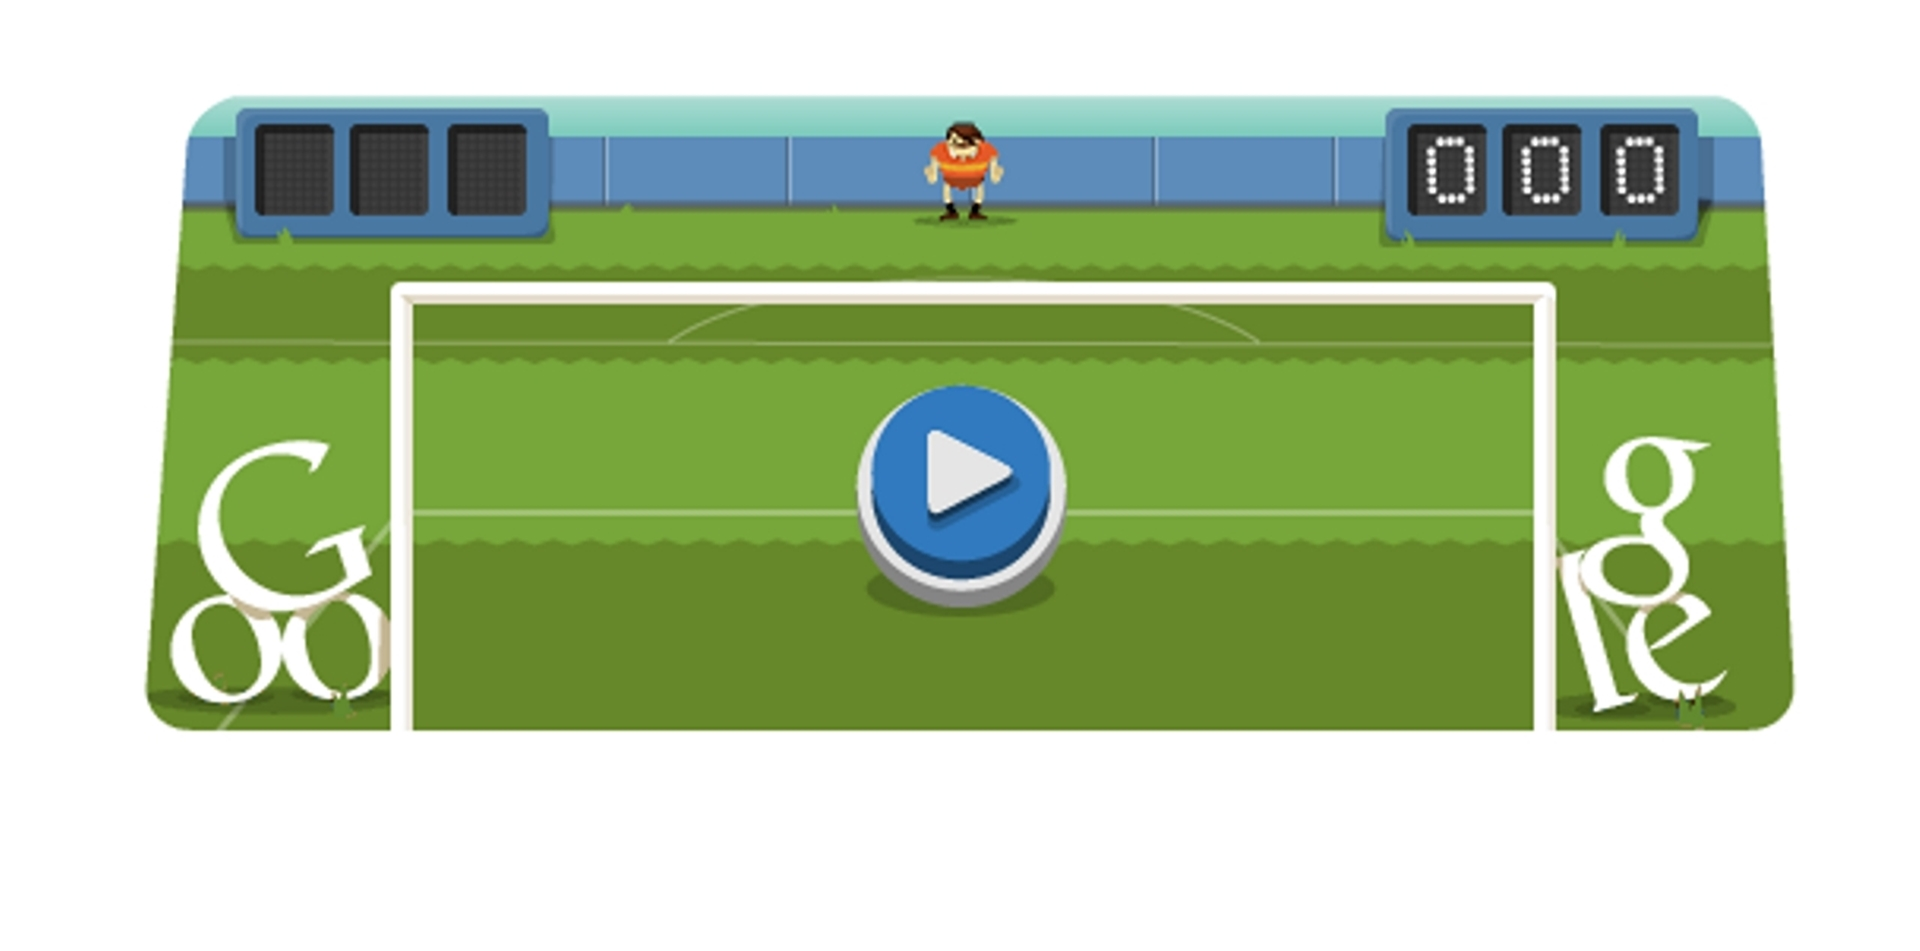 London 2012 Football Google Olympic Game